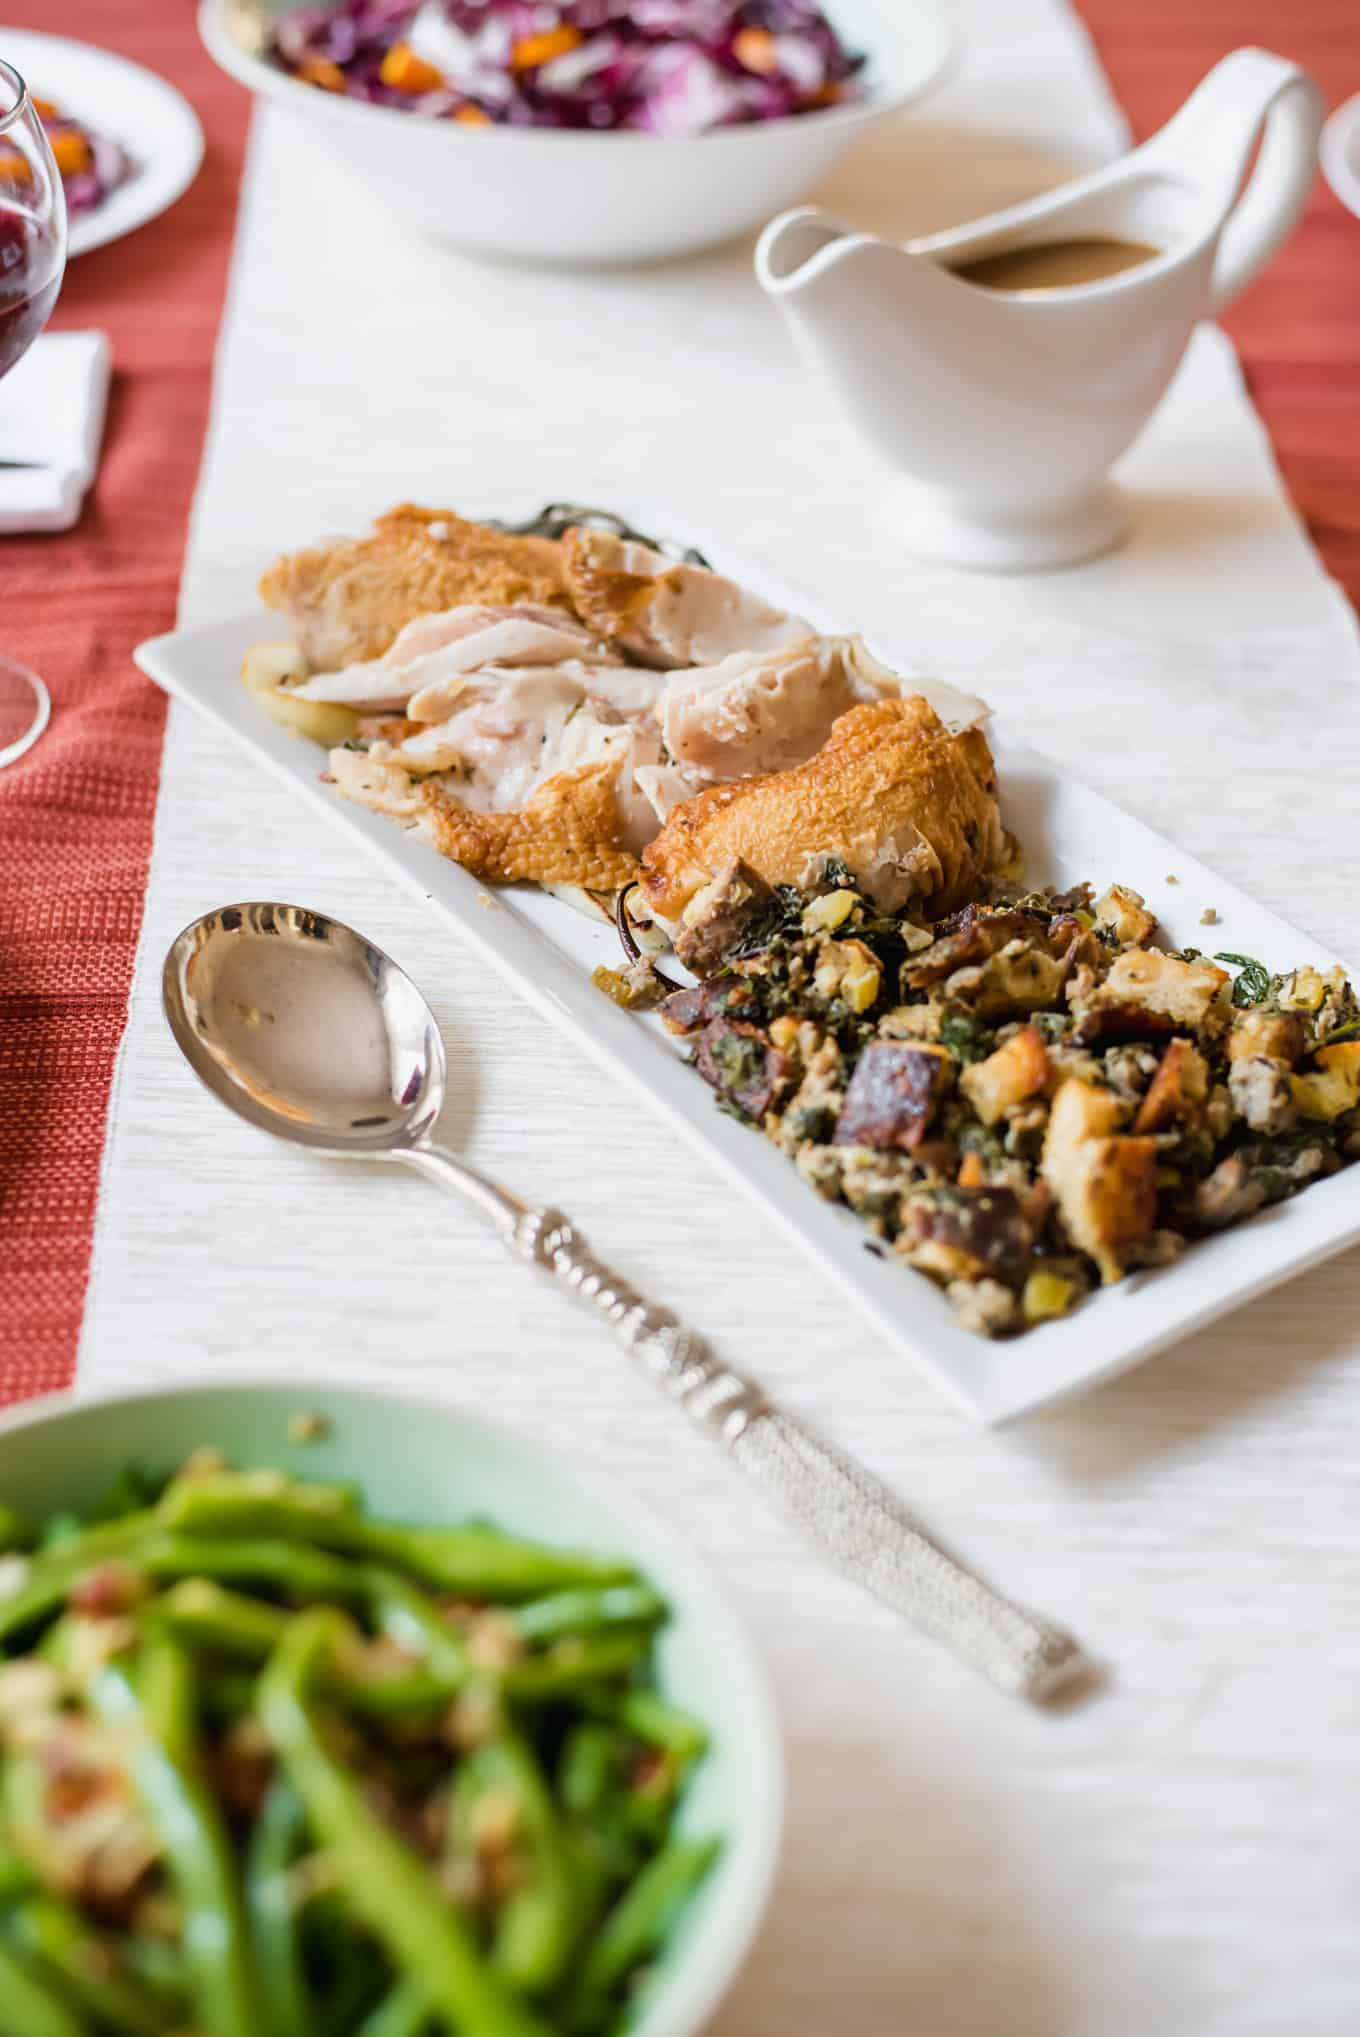 A plate of roasted turkey and stuffing on a table.